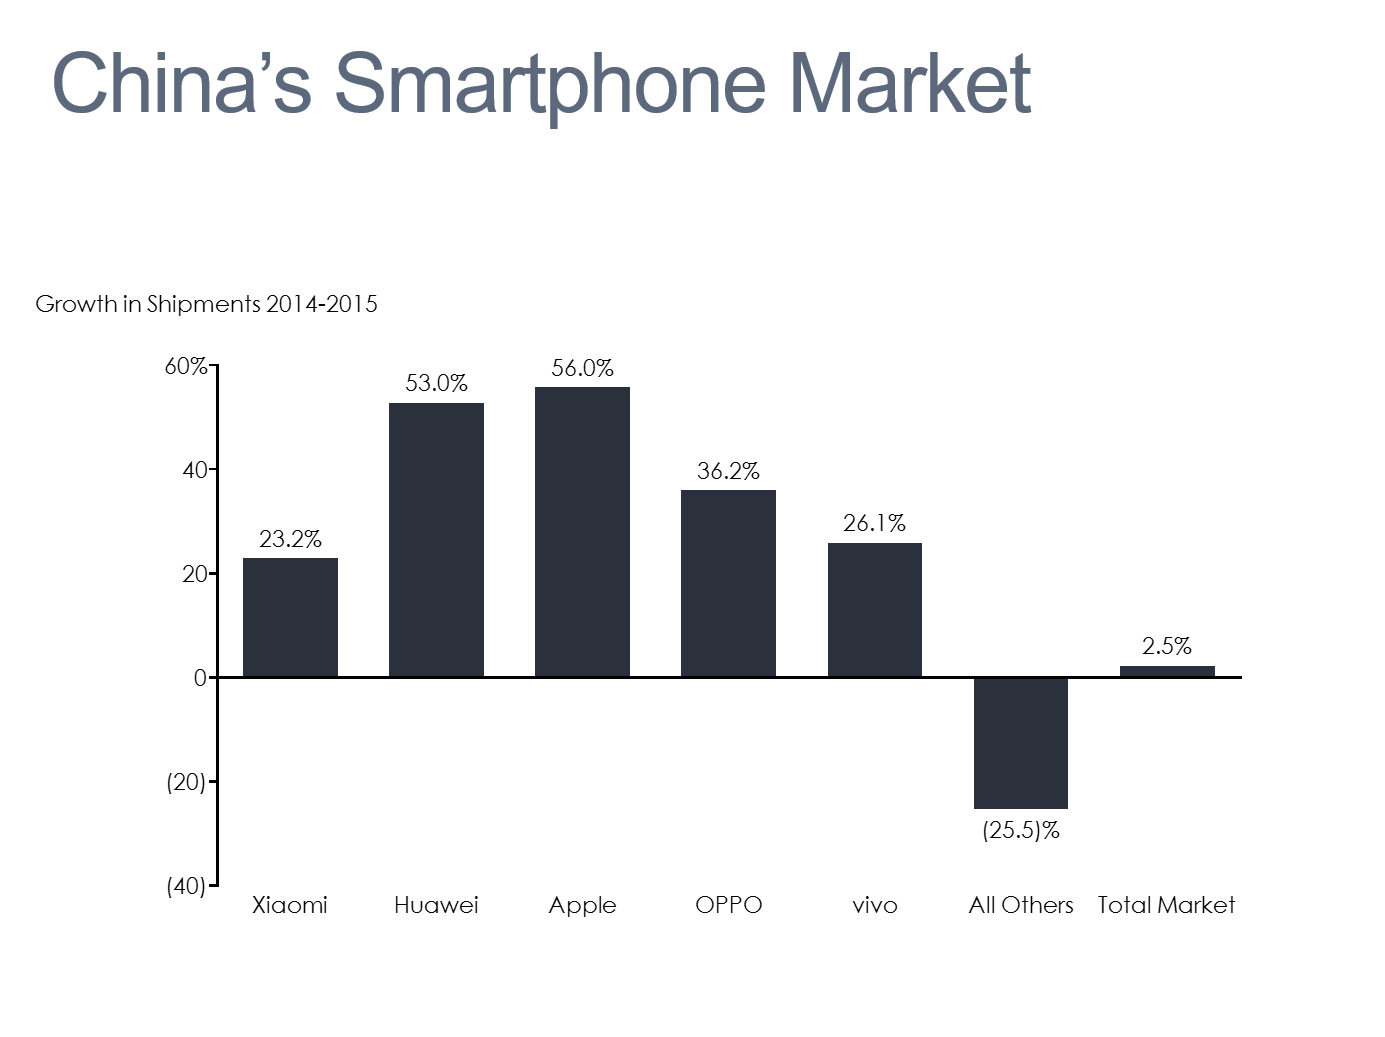 China's Smartphone Market Bar Chart